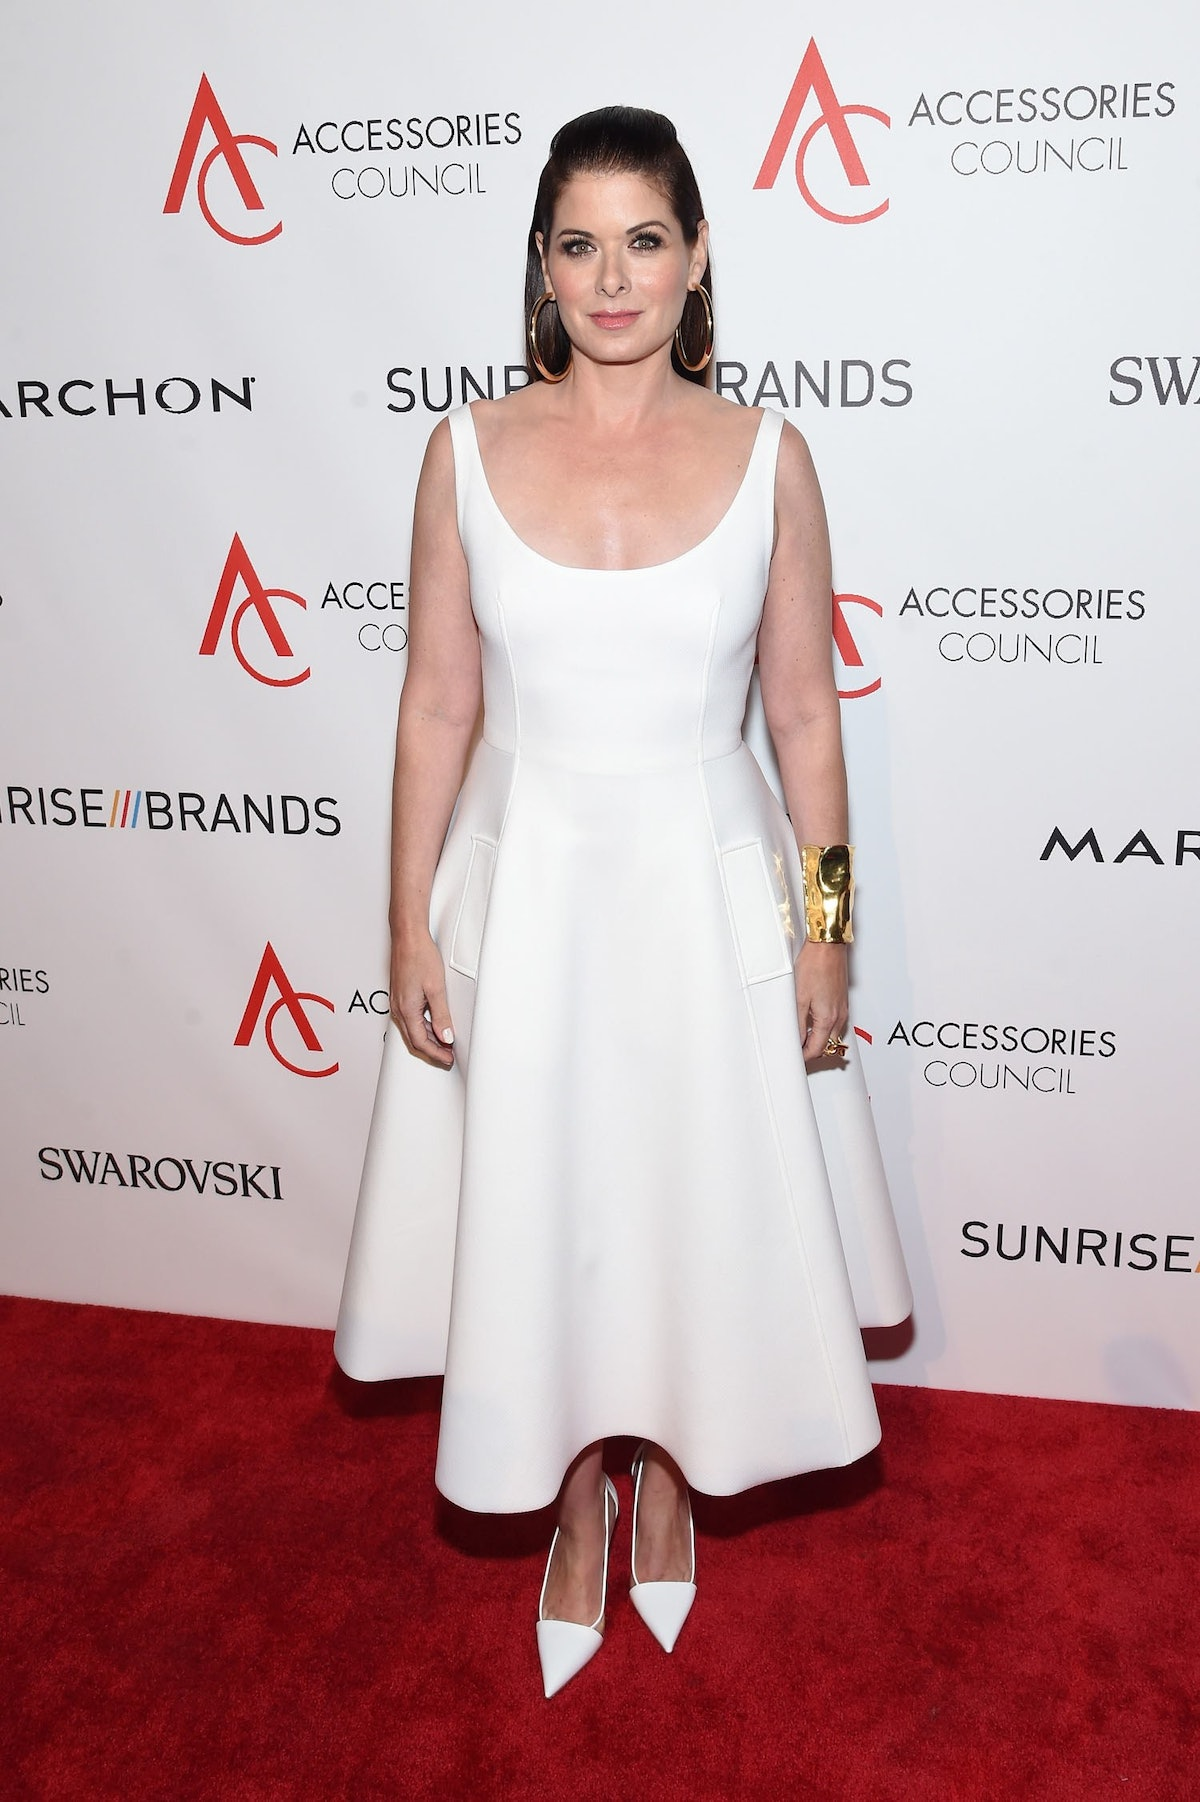 Debra Messing presents at the 20th Anniversary of the ACE Awards.jpg